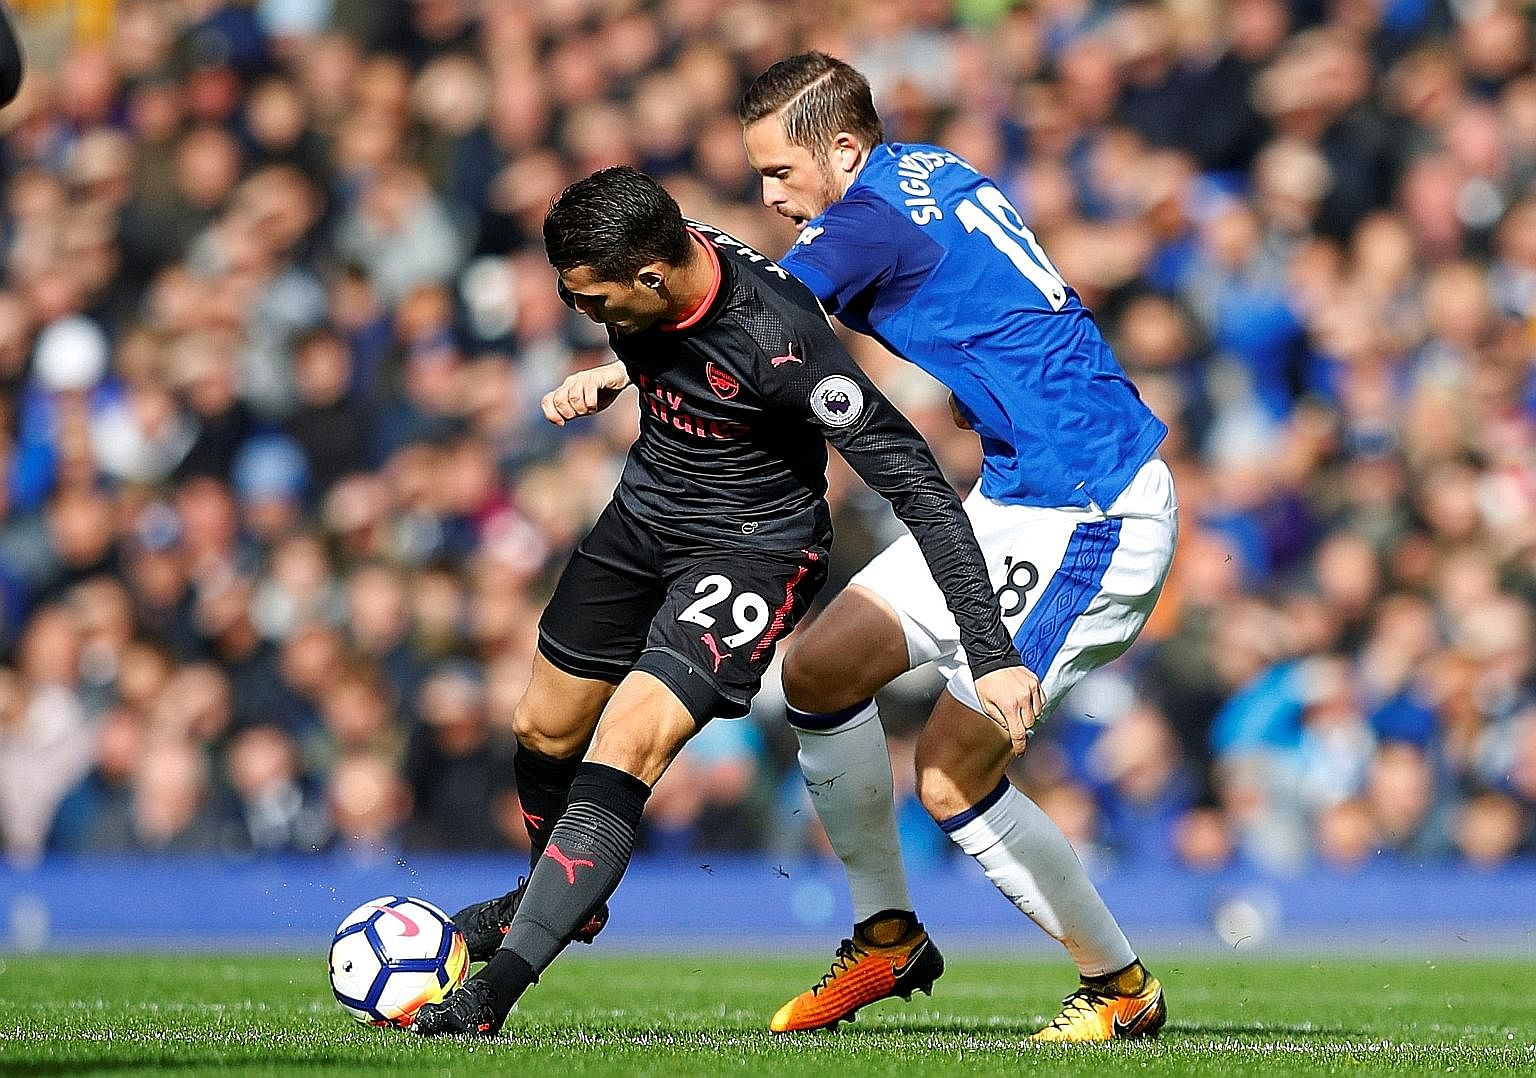 Arsenal's Granit Xhaka outsmarting Everton's Gylfi Sigurdsson during their Premier League encounter last Sunday. The Iceland midfielder, recruited from Swansea City in August, received praise from Ronald Koeman despite below-par performances.